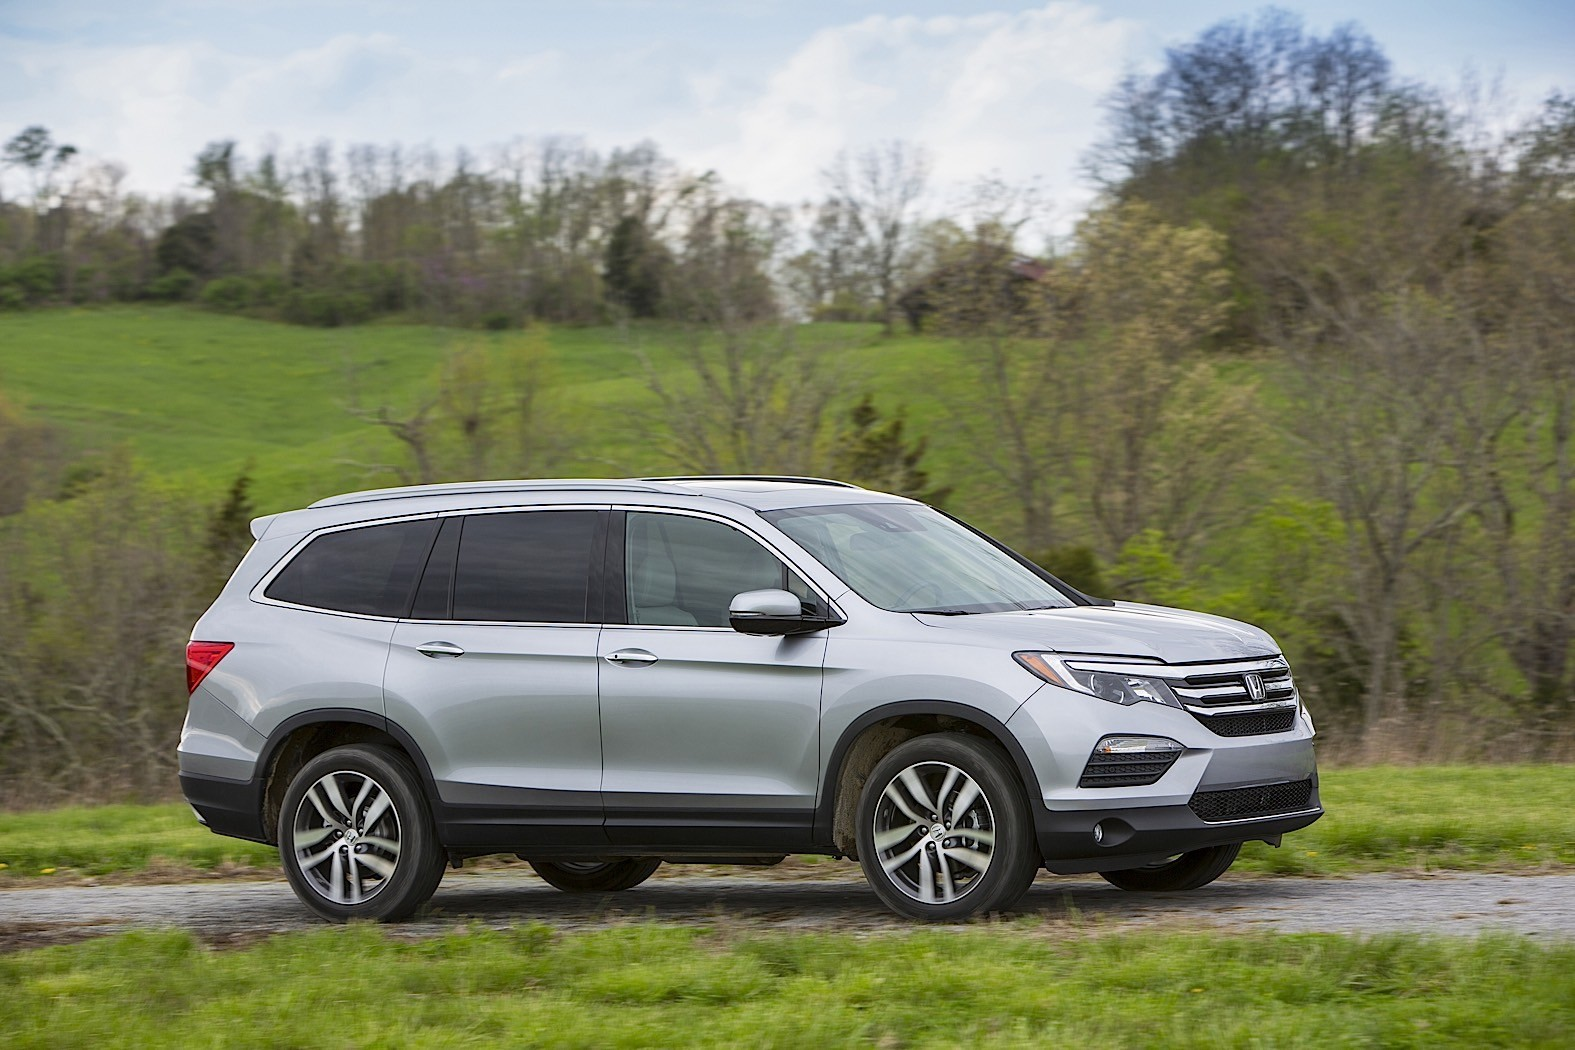 2016 honda pilot review autoevolution. Black Bedroom Furniture Sets. Home Design Ideas